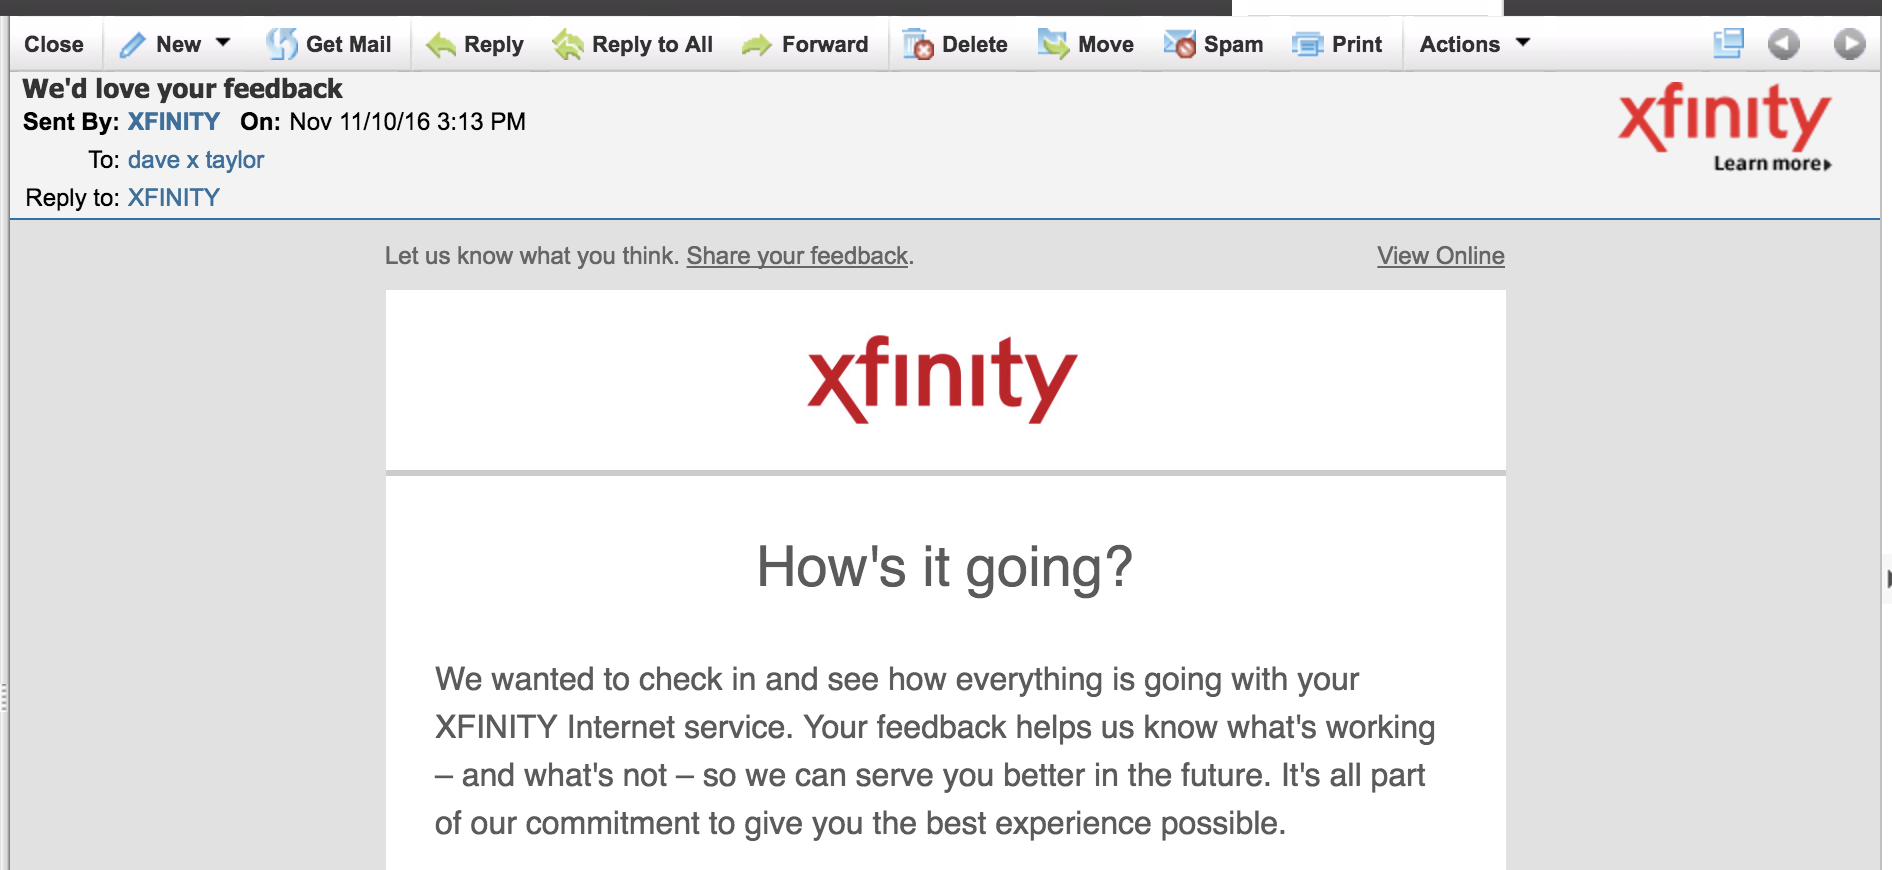 Create Email Folders in Comcast Xfinity Webmail? - Ask Dave Taylor